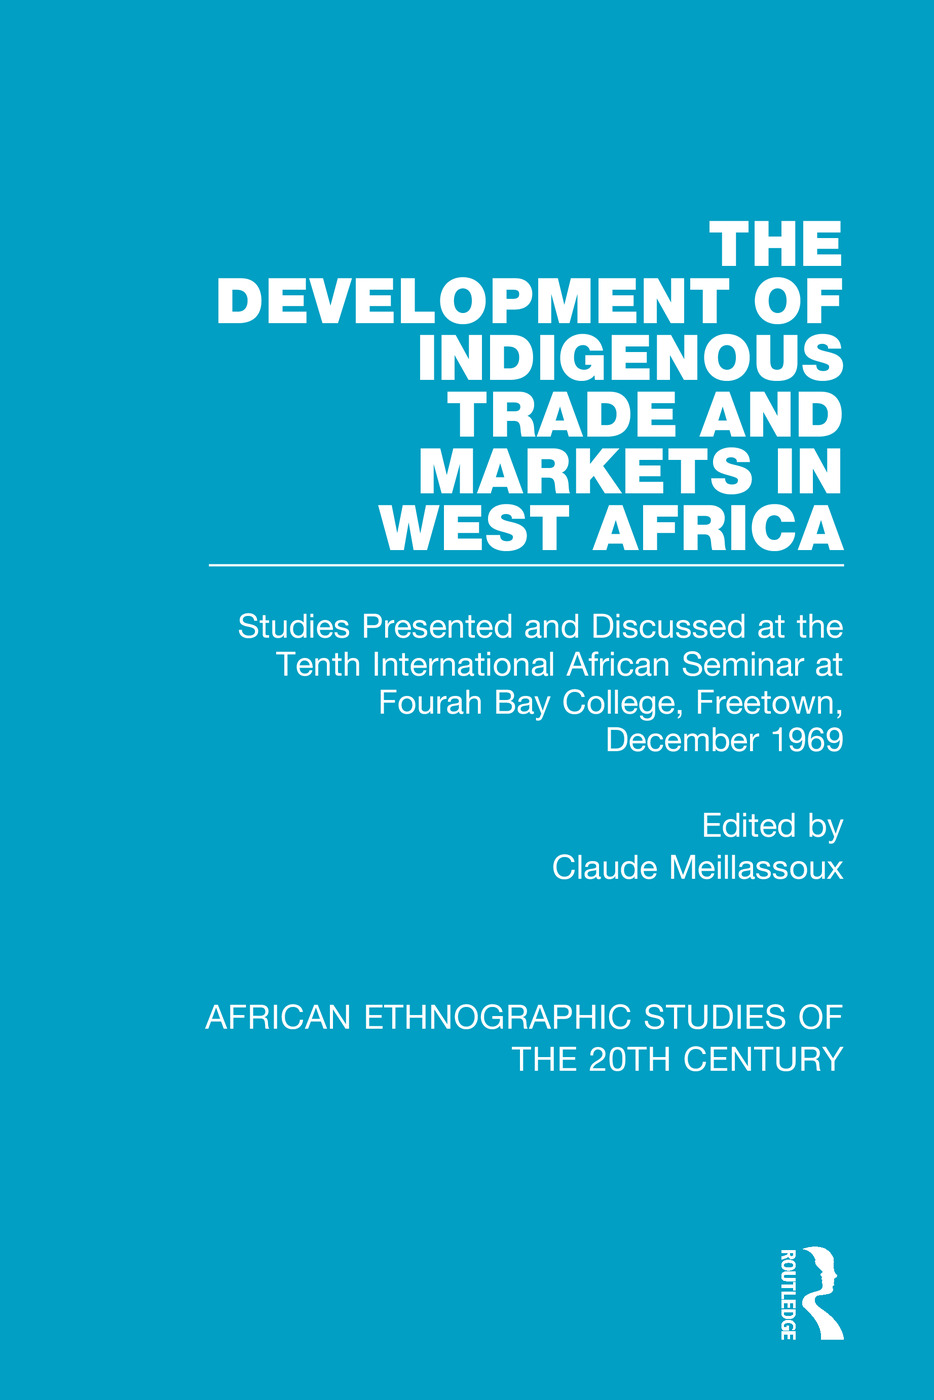 The Development of Indigenous Trade and Markets in West Africa: Studies Presented and Discussed at the Tenth International African Seminar at Fourah Bay College, Freetown, December 1969 book cover